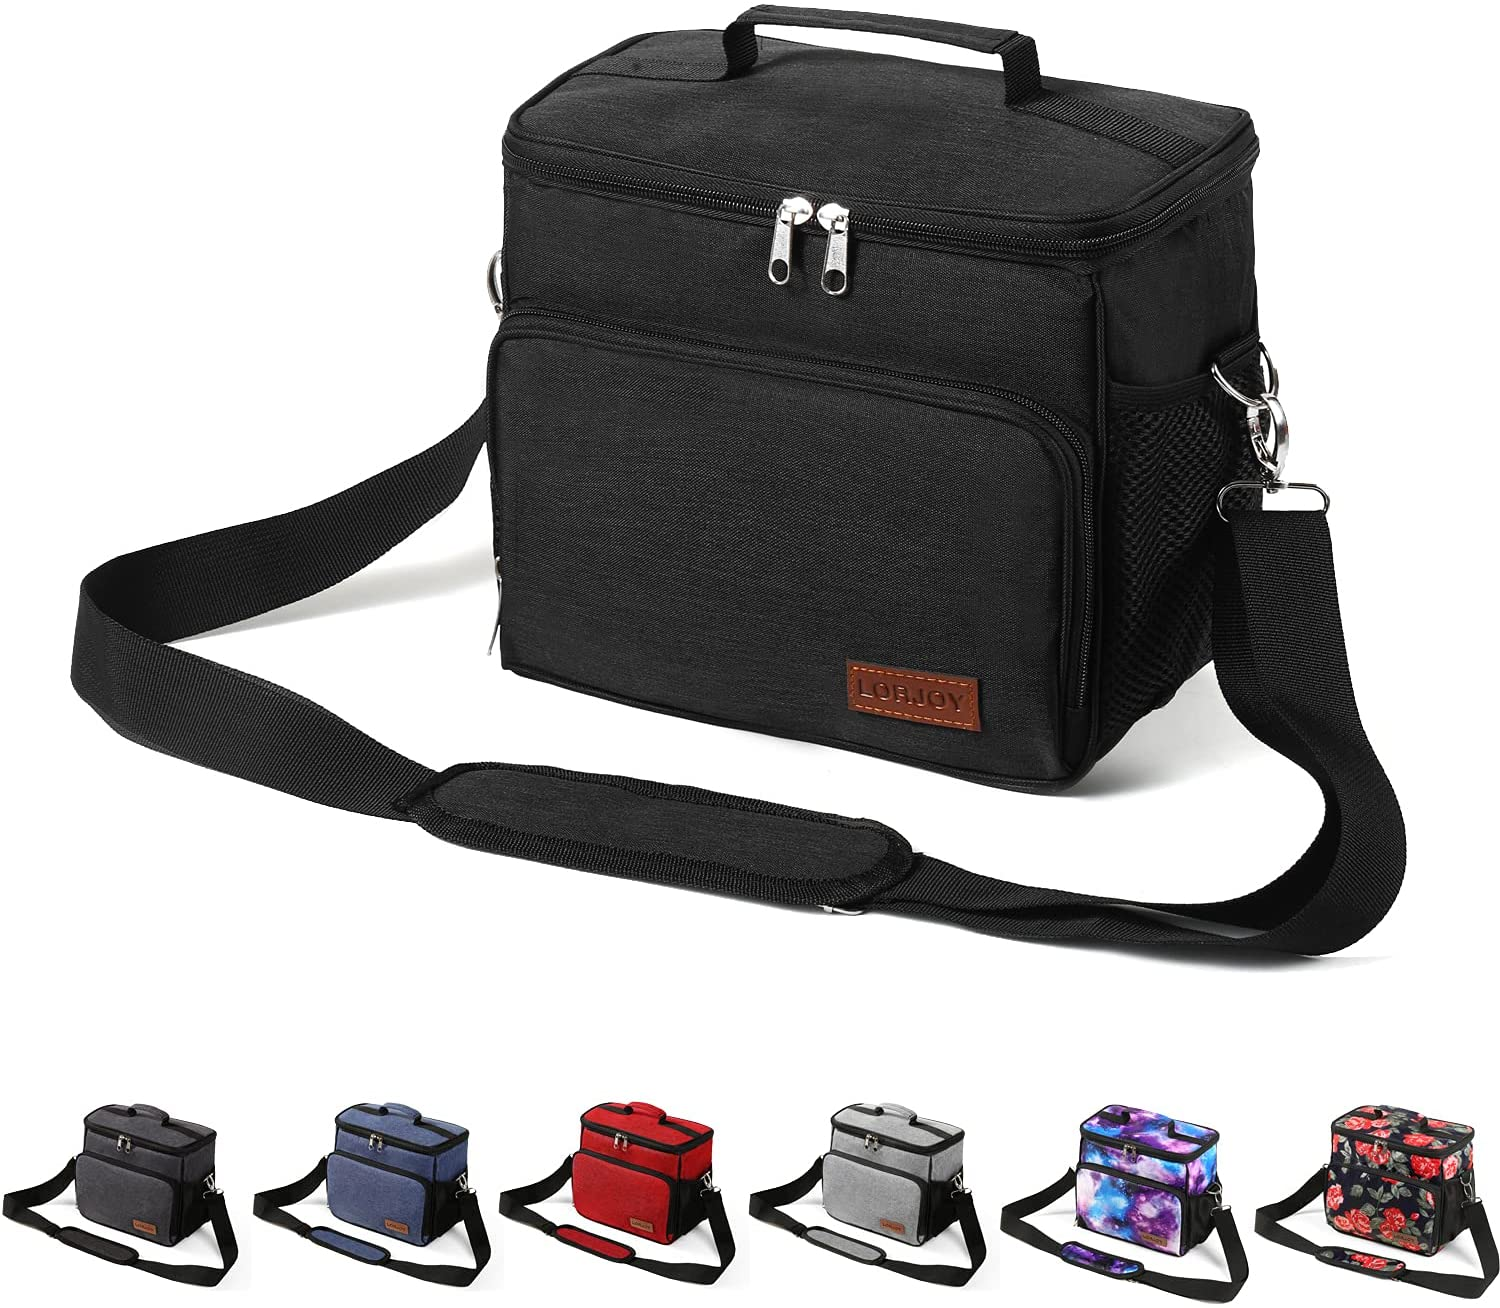 Adult Lunch Boxes For Men Quantity limited Insulated Freezable Max 81% OFF B Heavy Duty